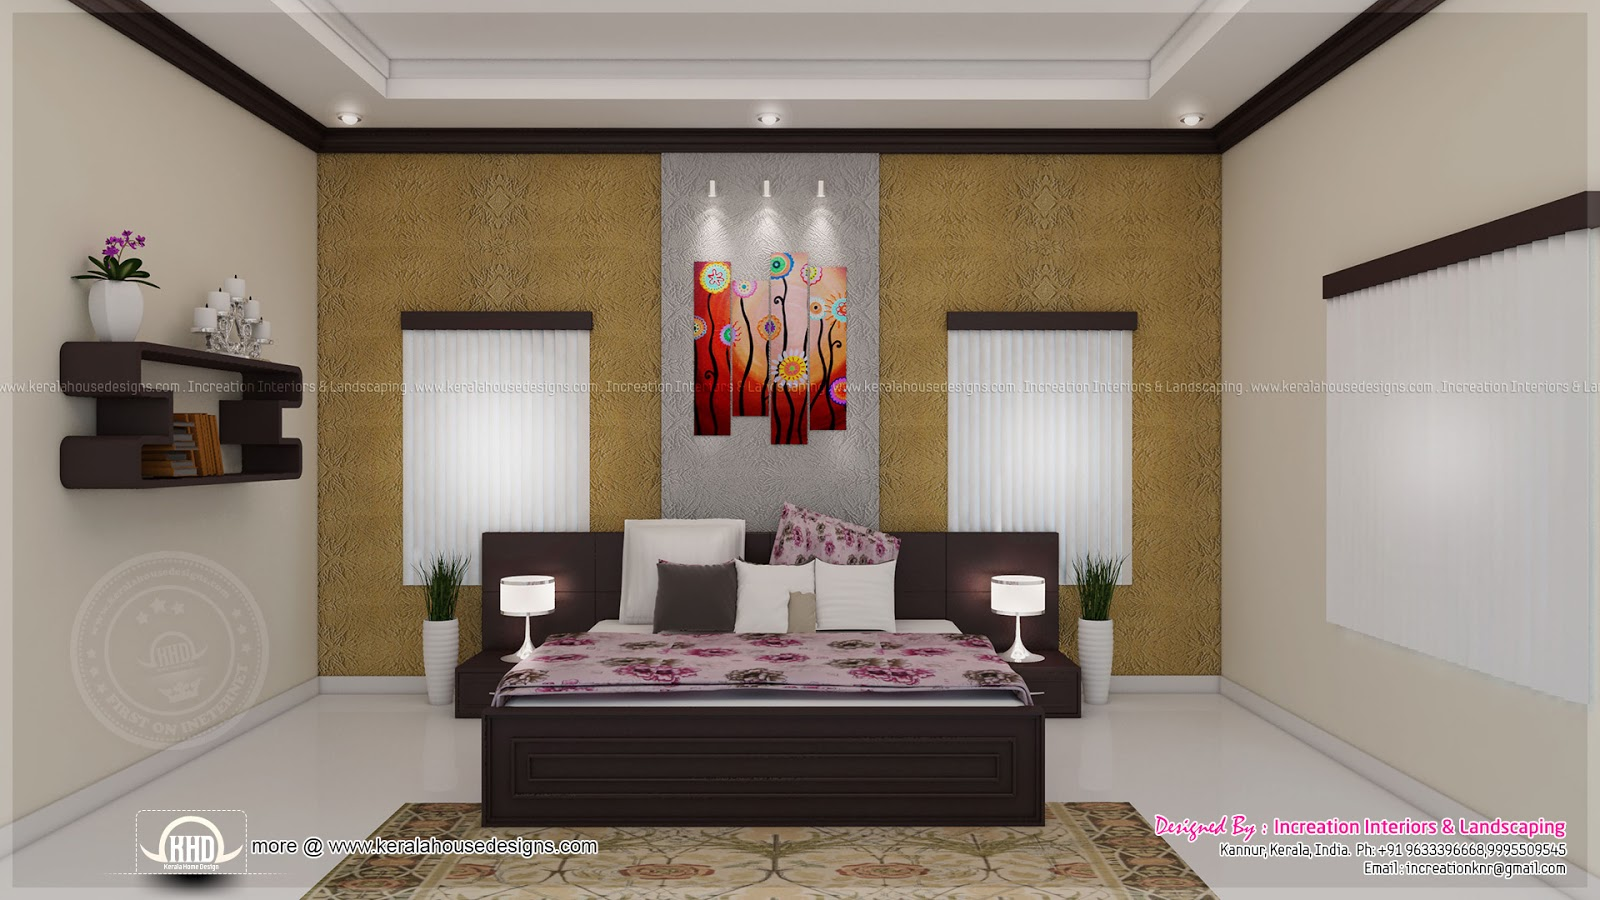 House interior ideas in 3d rendering kerala home design - Interior design for bedroom in india ...